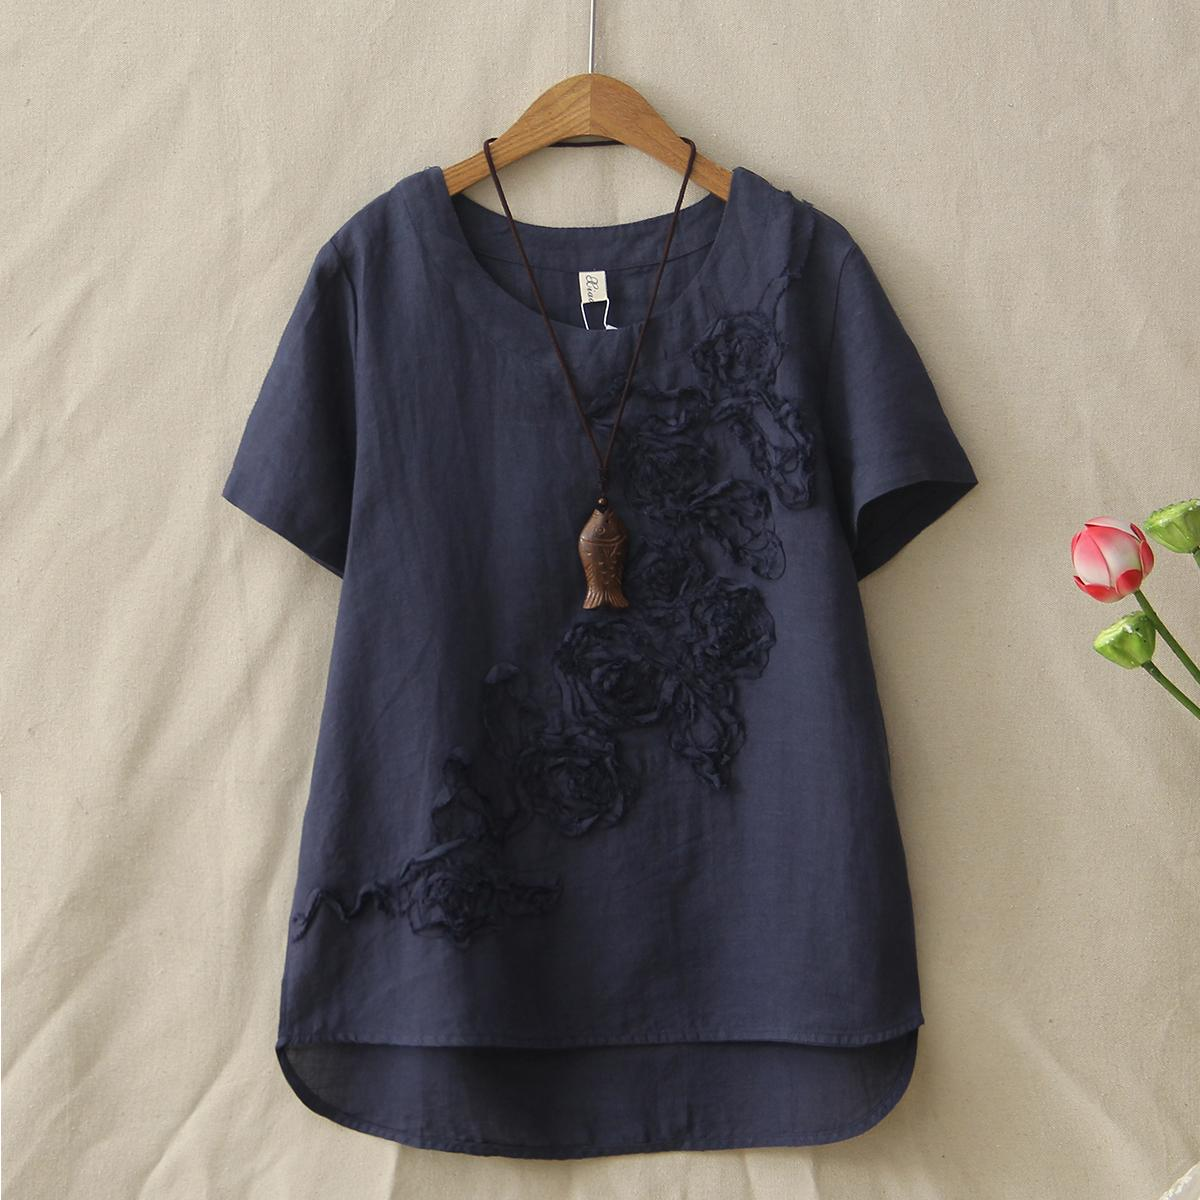 d1506c253fe7 Summer New Cotton And Linen T Shirt Female Short Sleeved Fashion Flower  Embroidery Tops Womens Tee Shirts Irregular Clothing Online T Shirt Buy  Joke T Shirt ...